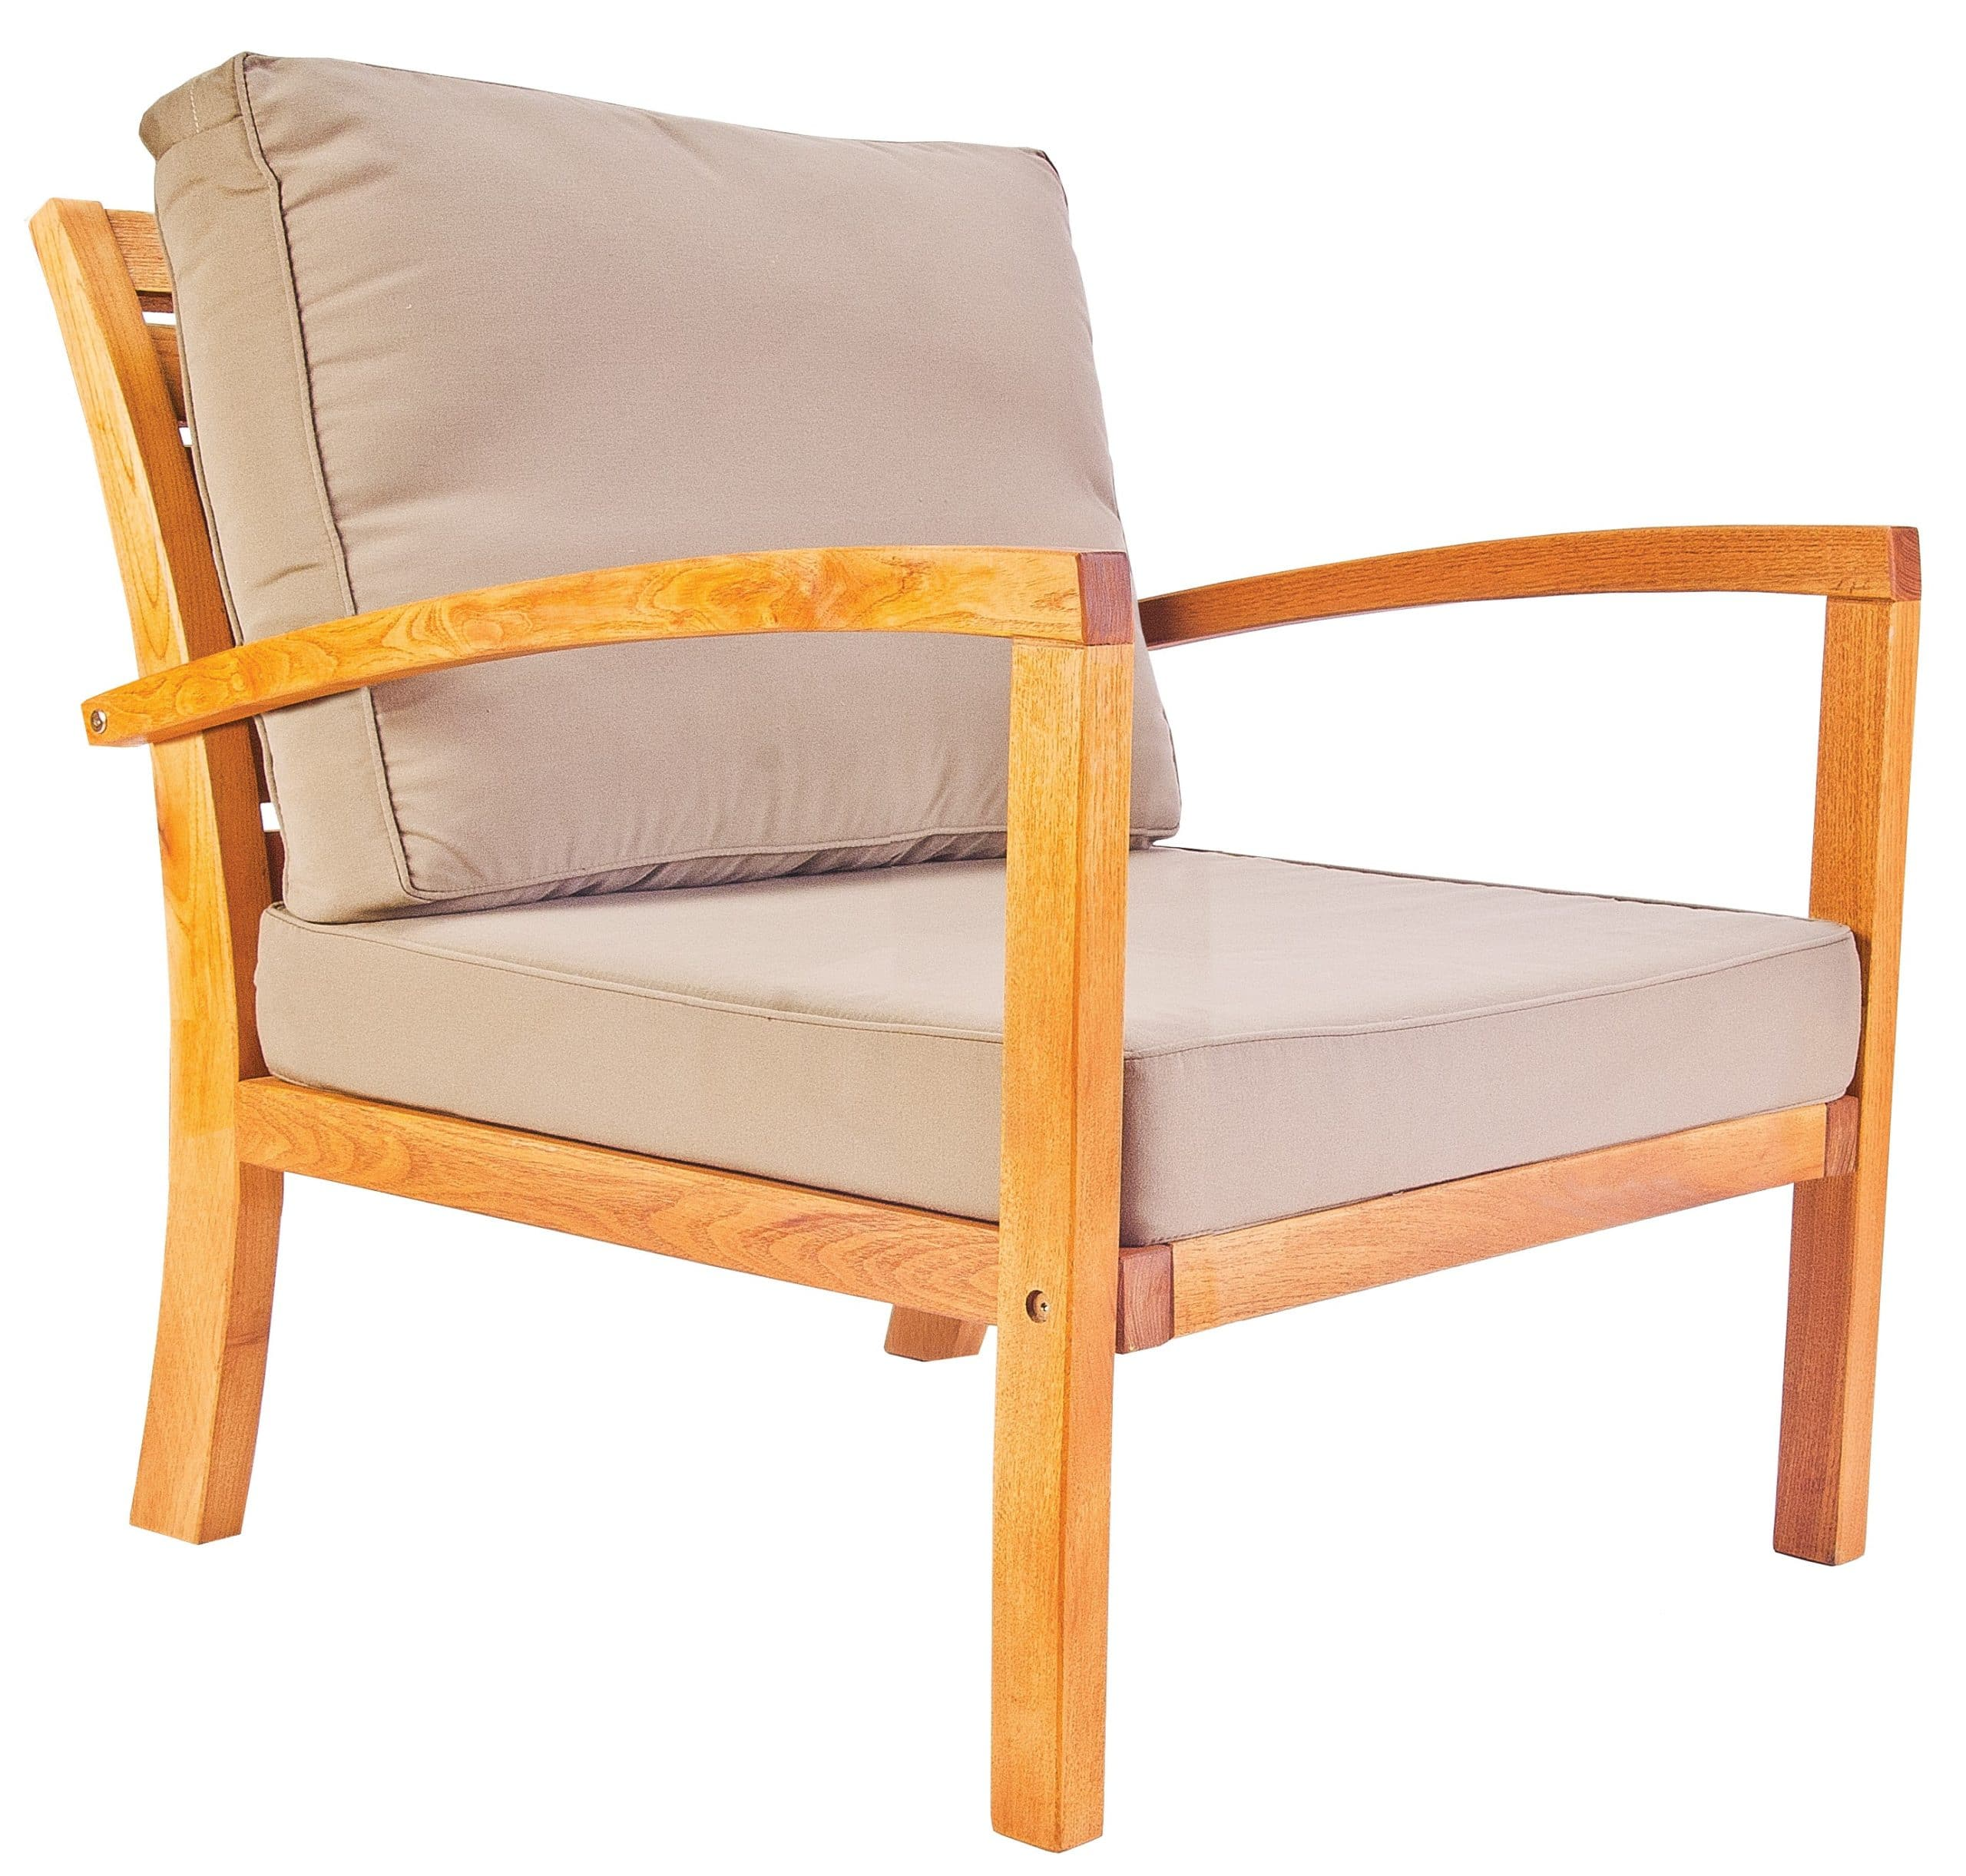 <p>Outdoor Furniture Leisure Collection Vista Armchair.</p> <p> </p> <p>Comfortable Patio Lounge Set Vista Armchair.</p> <p> </p> <p>Modern Leisure indoor or outdoor Hotel Coffee Lounge Set includes Armchairs, Chair, Corner Settee, Footstool and Table. Suits a variety of locations and settings including outdoor terraces, hotel reception areas and foyers.</p>